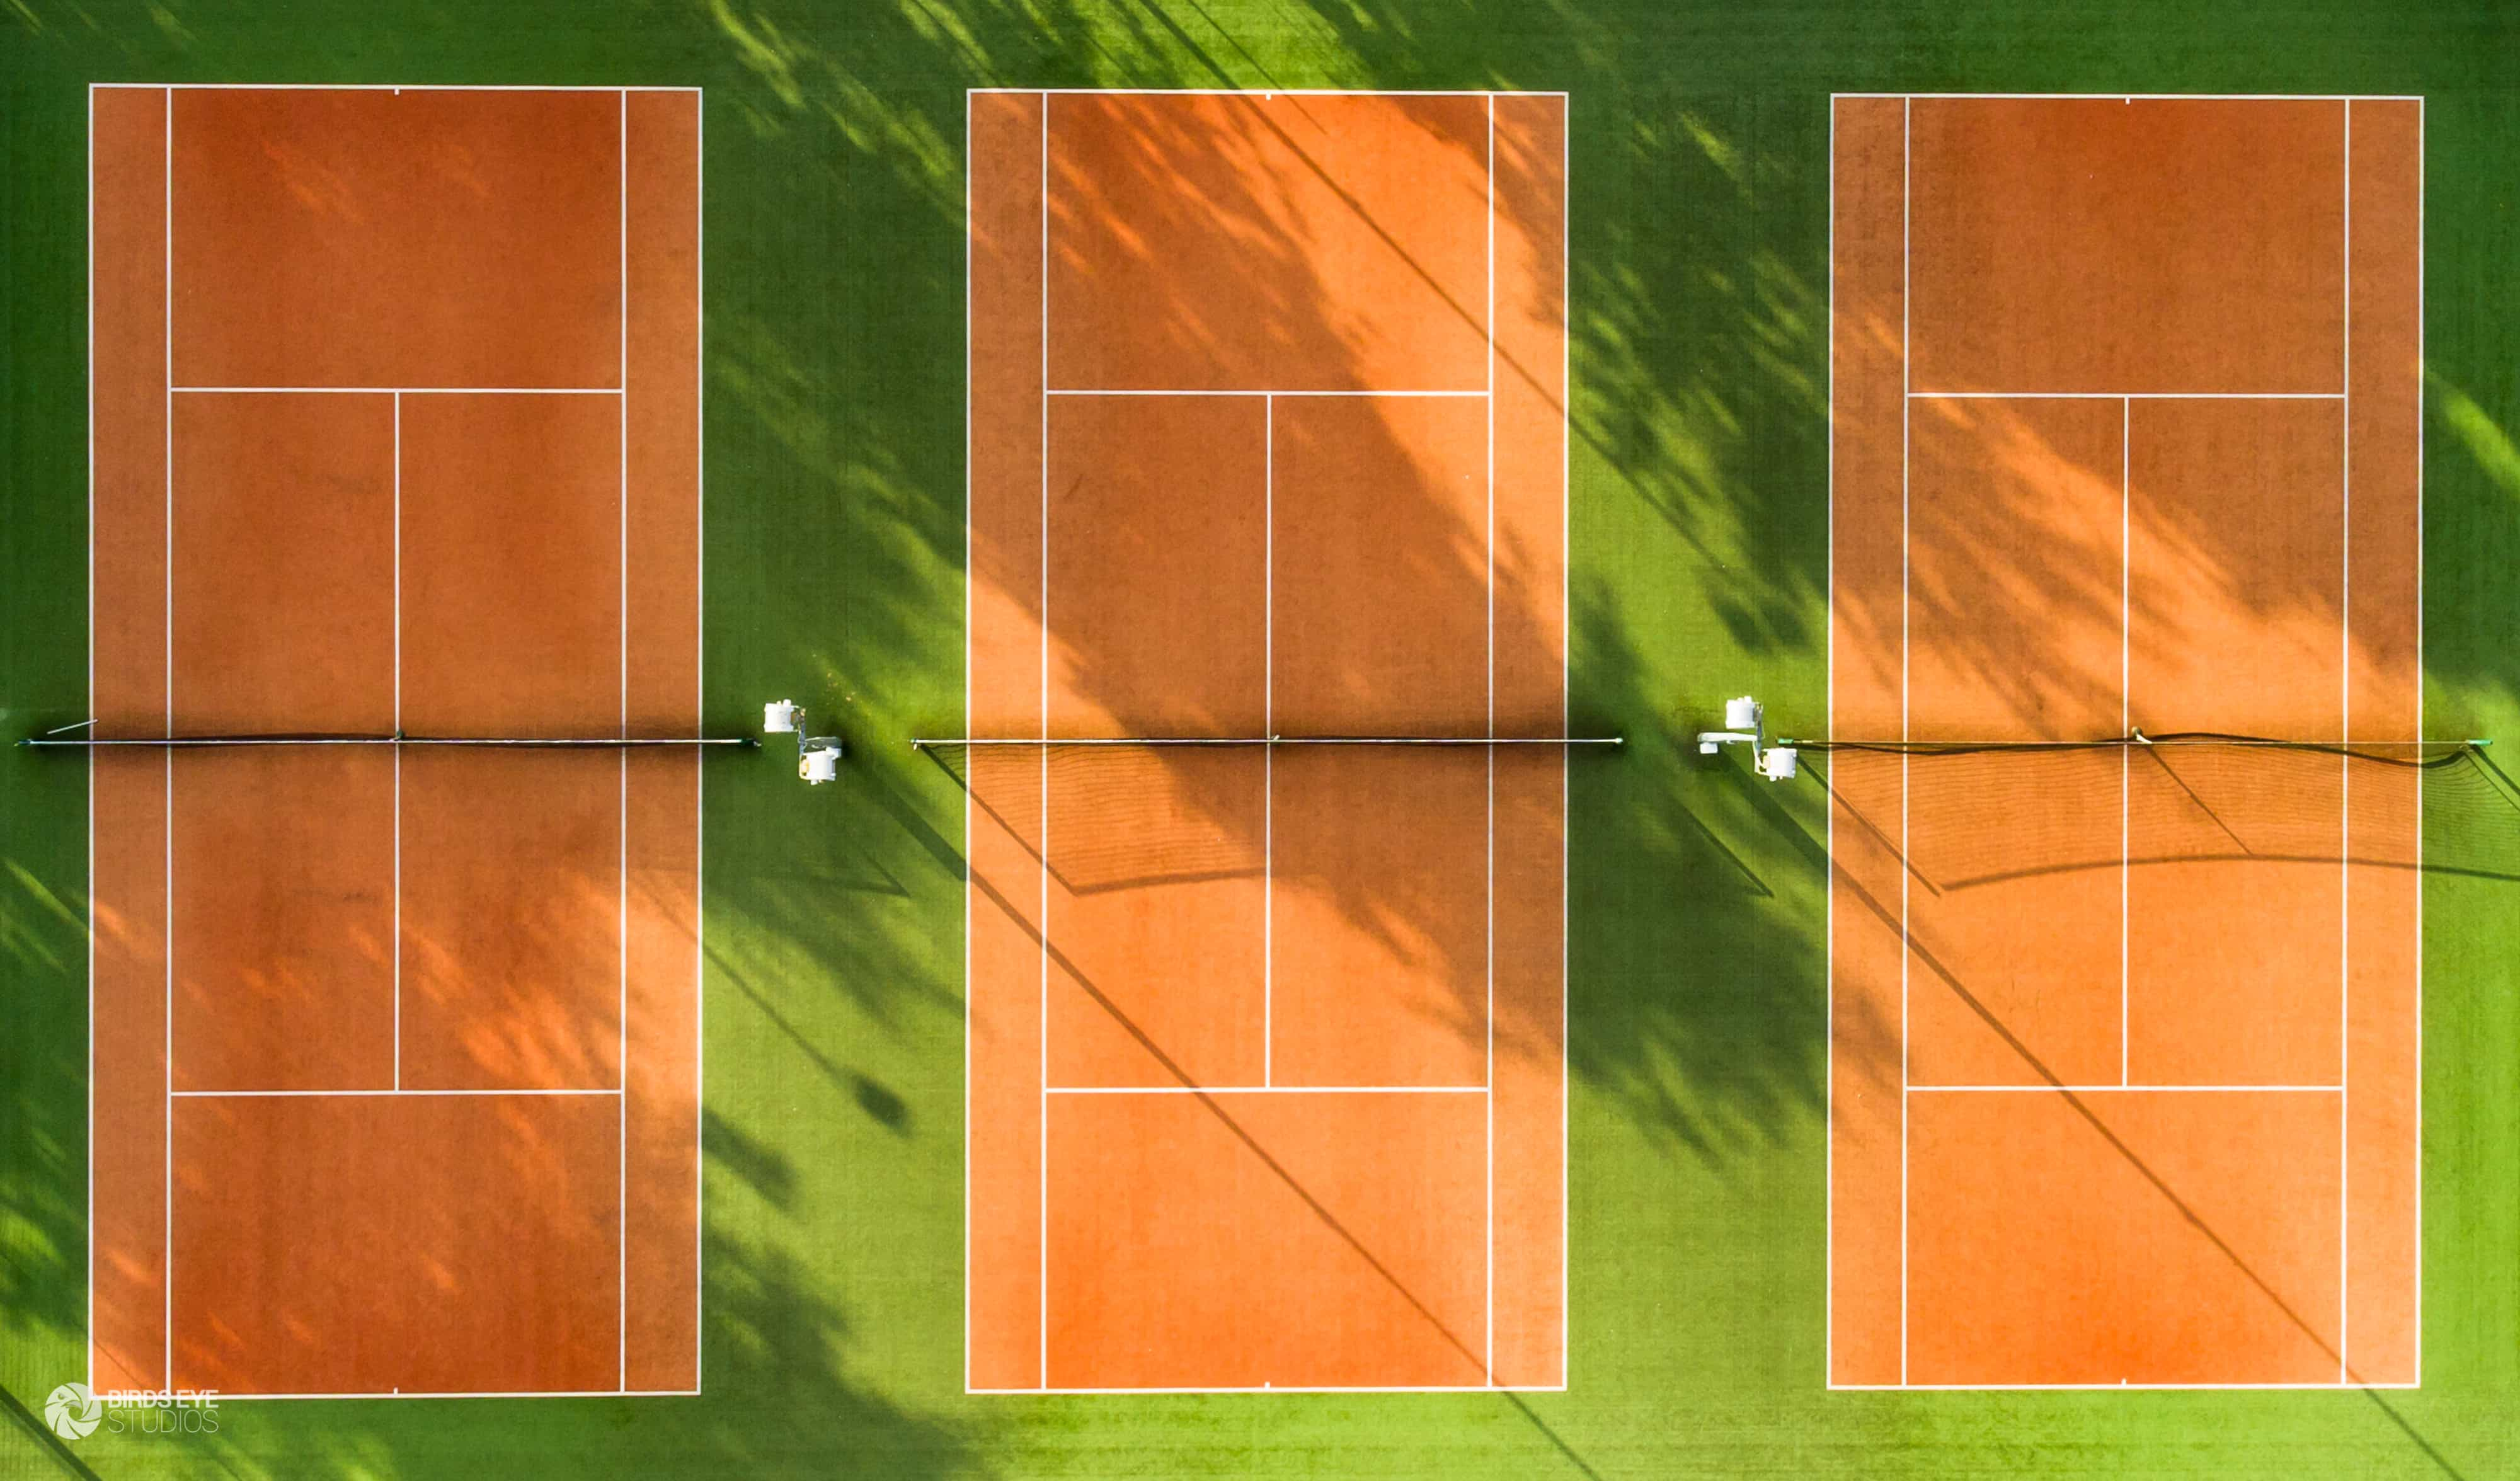 aerial tennis courts